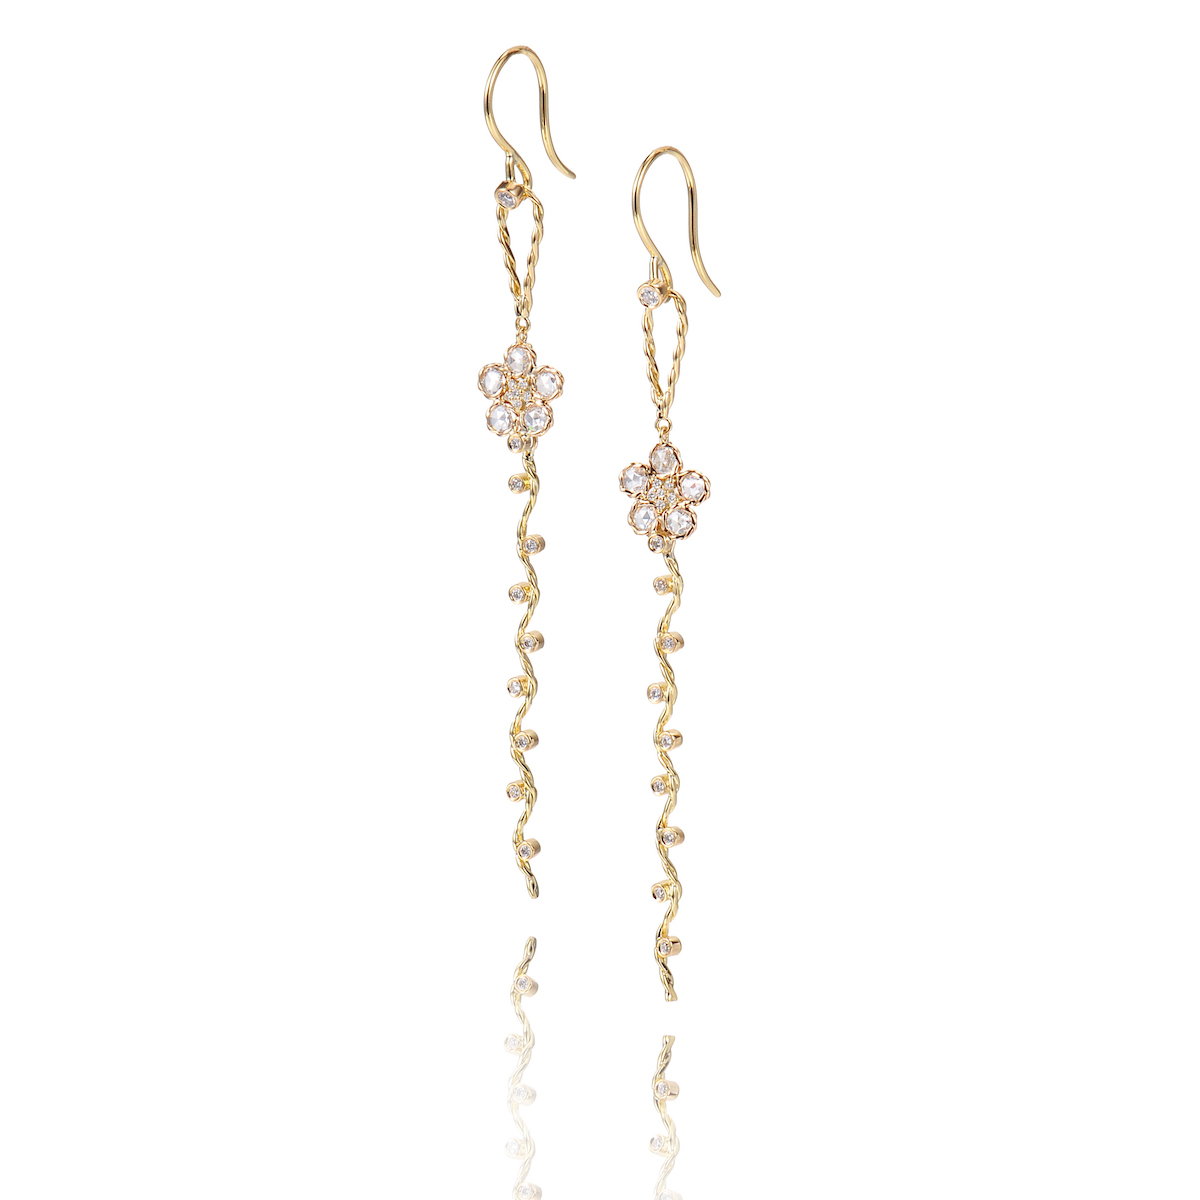 80_ALGE-06-JeweLyrie-Rose-Cut-Diamond-Floral-Wavy-Dangle-Detachable-Convertible-Earrings-18k